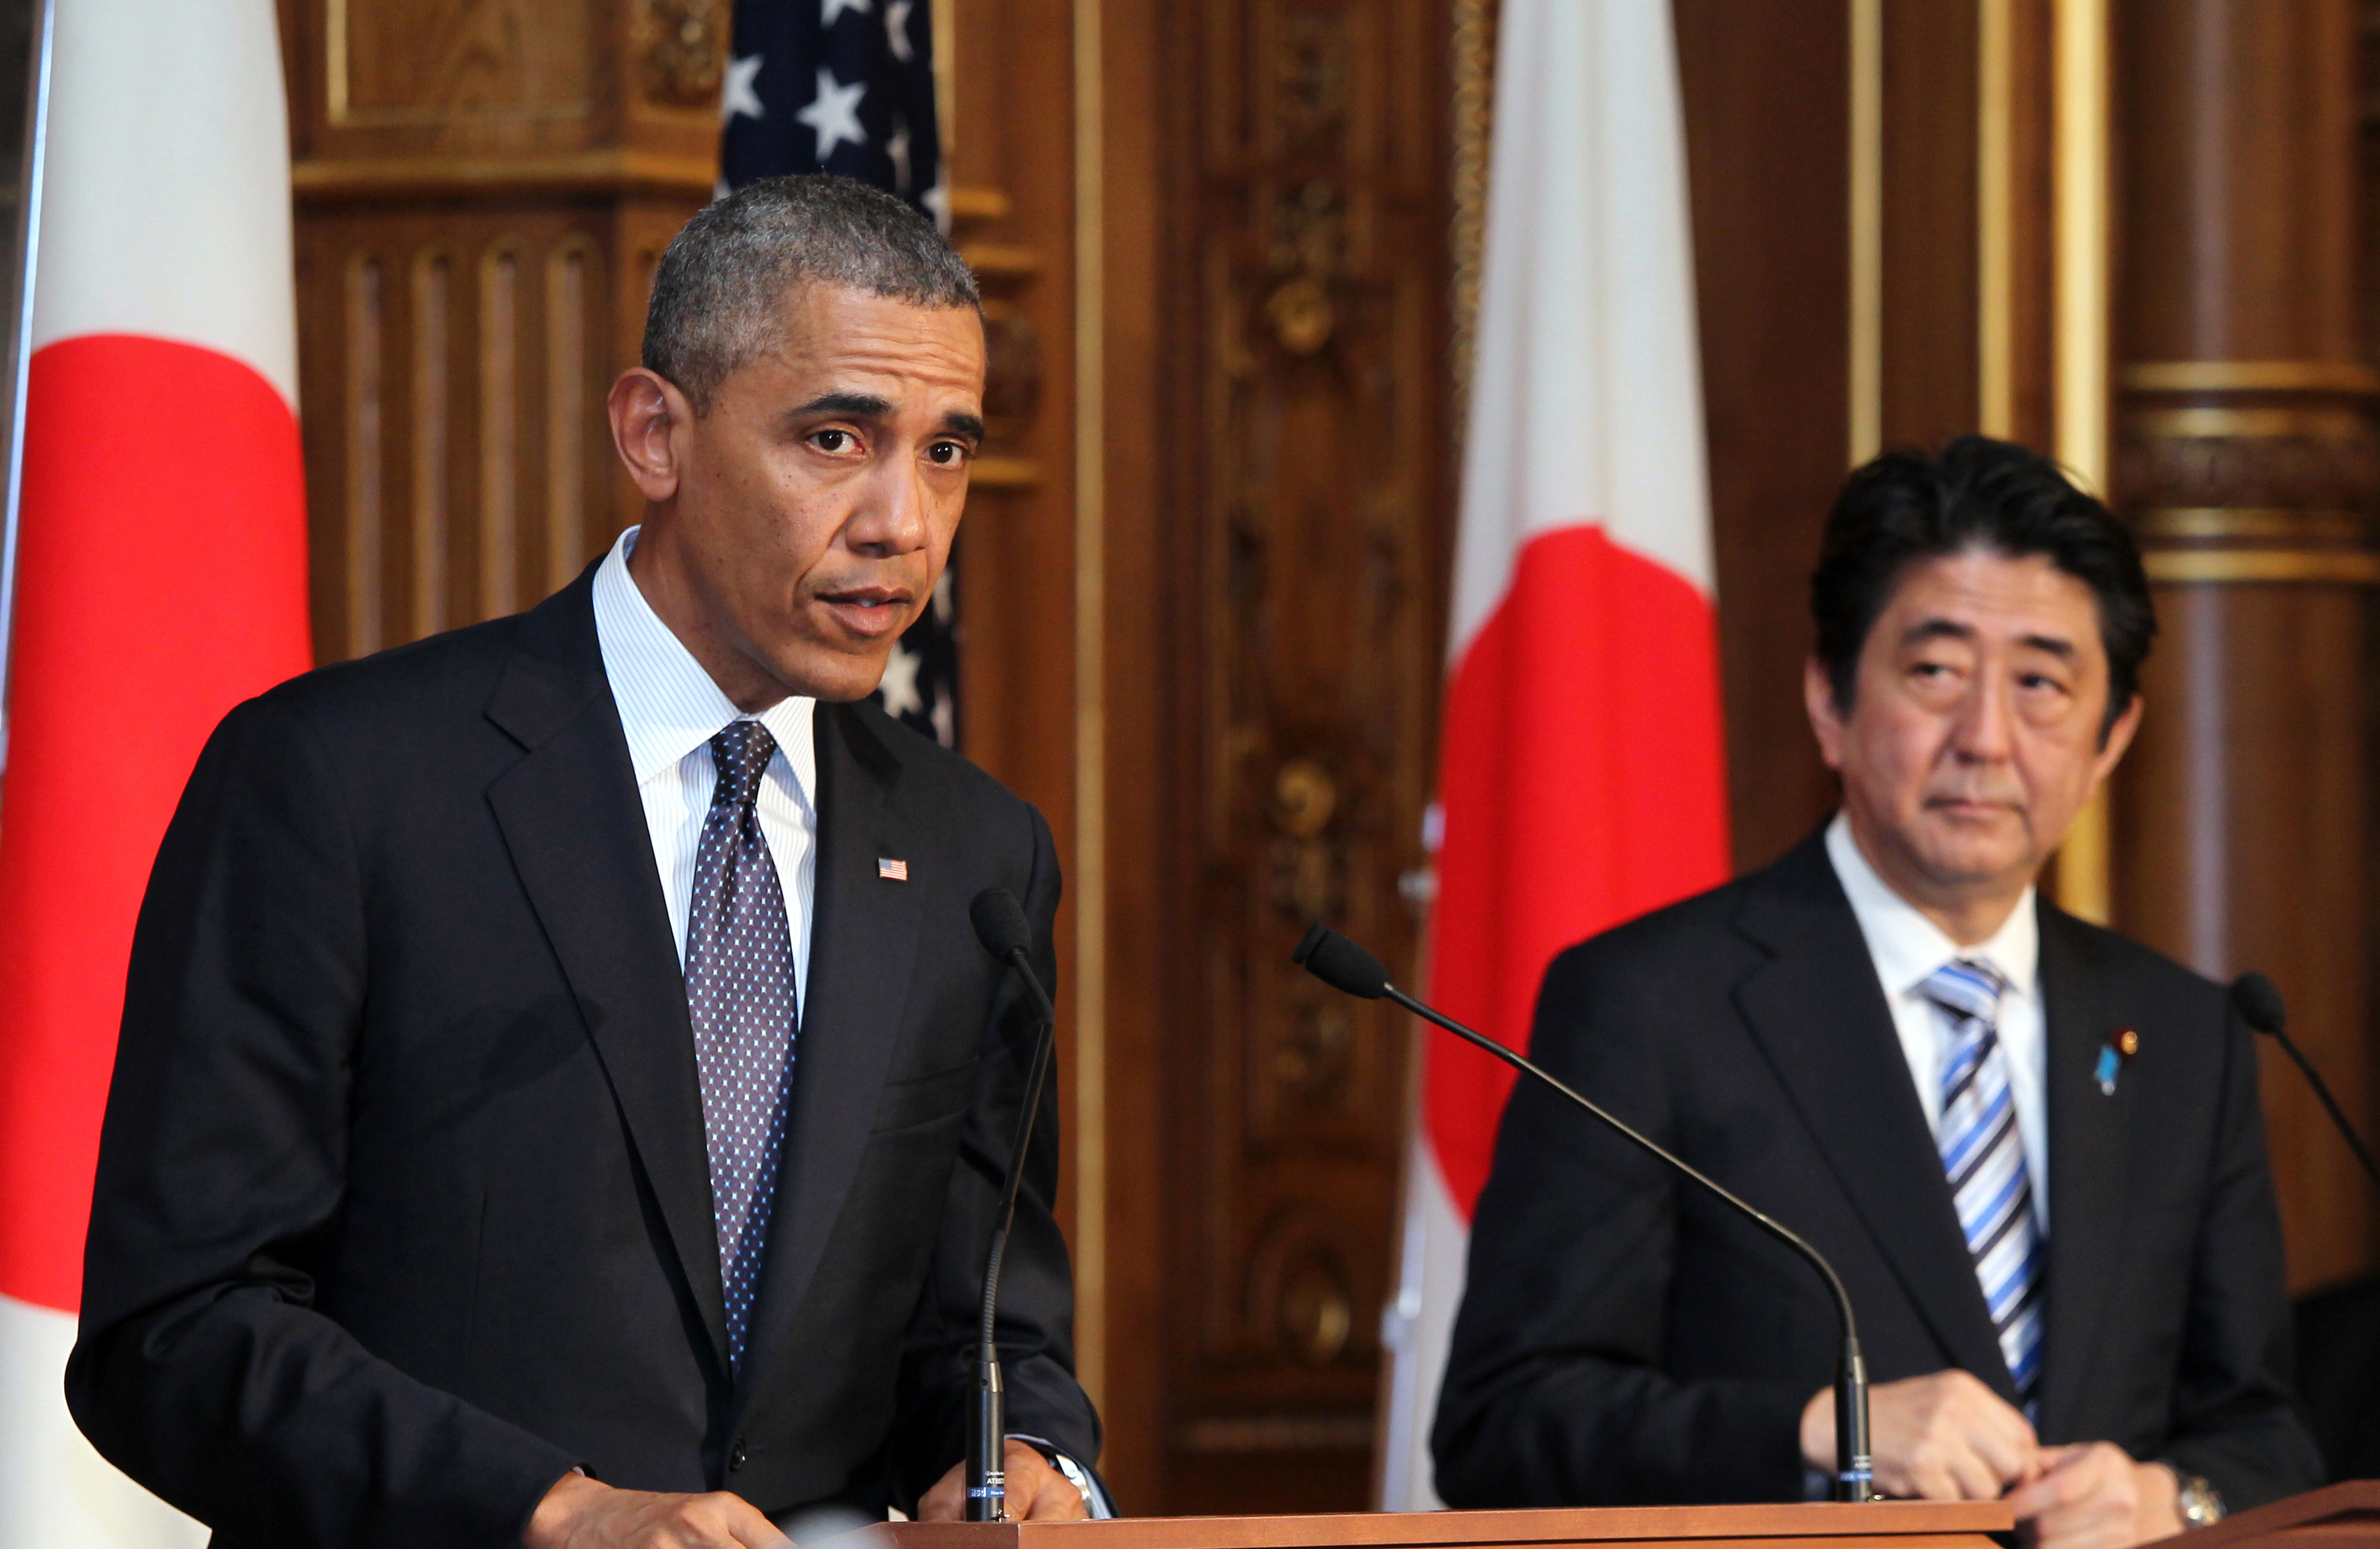 U.S. President Barack Obama, left, speaks as Shinzo Abe, Japan's prime minister, looks on during a joint news conference at the State Guest House in Tokyo, Japan, on Thursday, April 24, 2014.